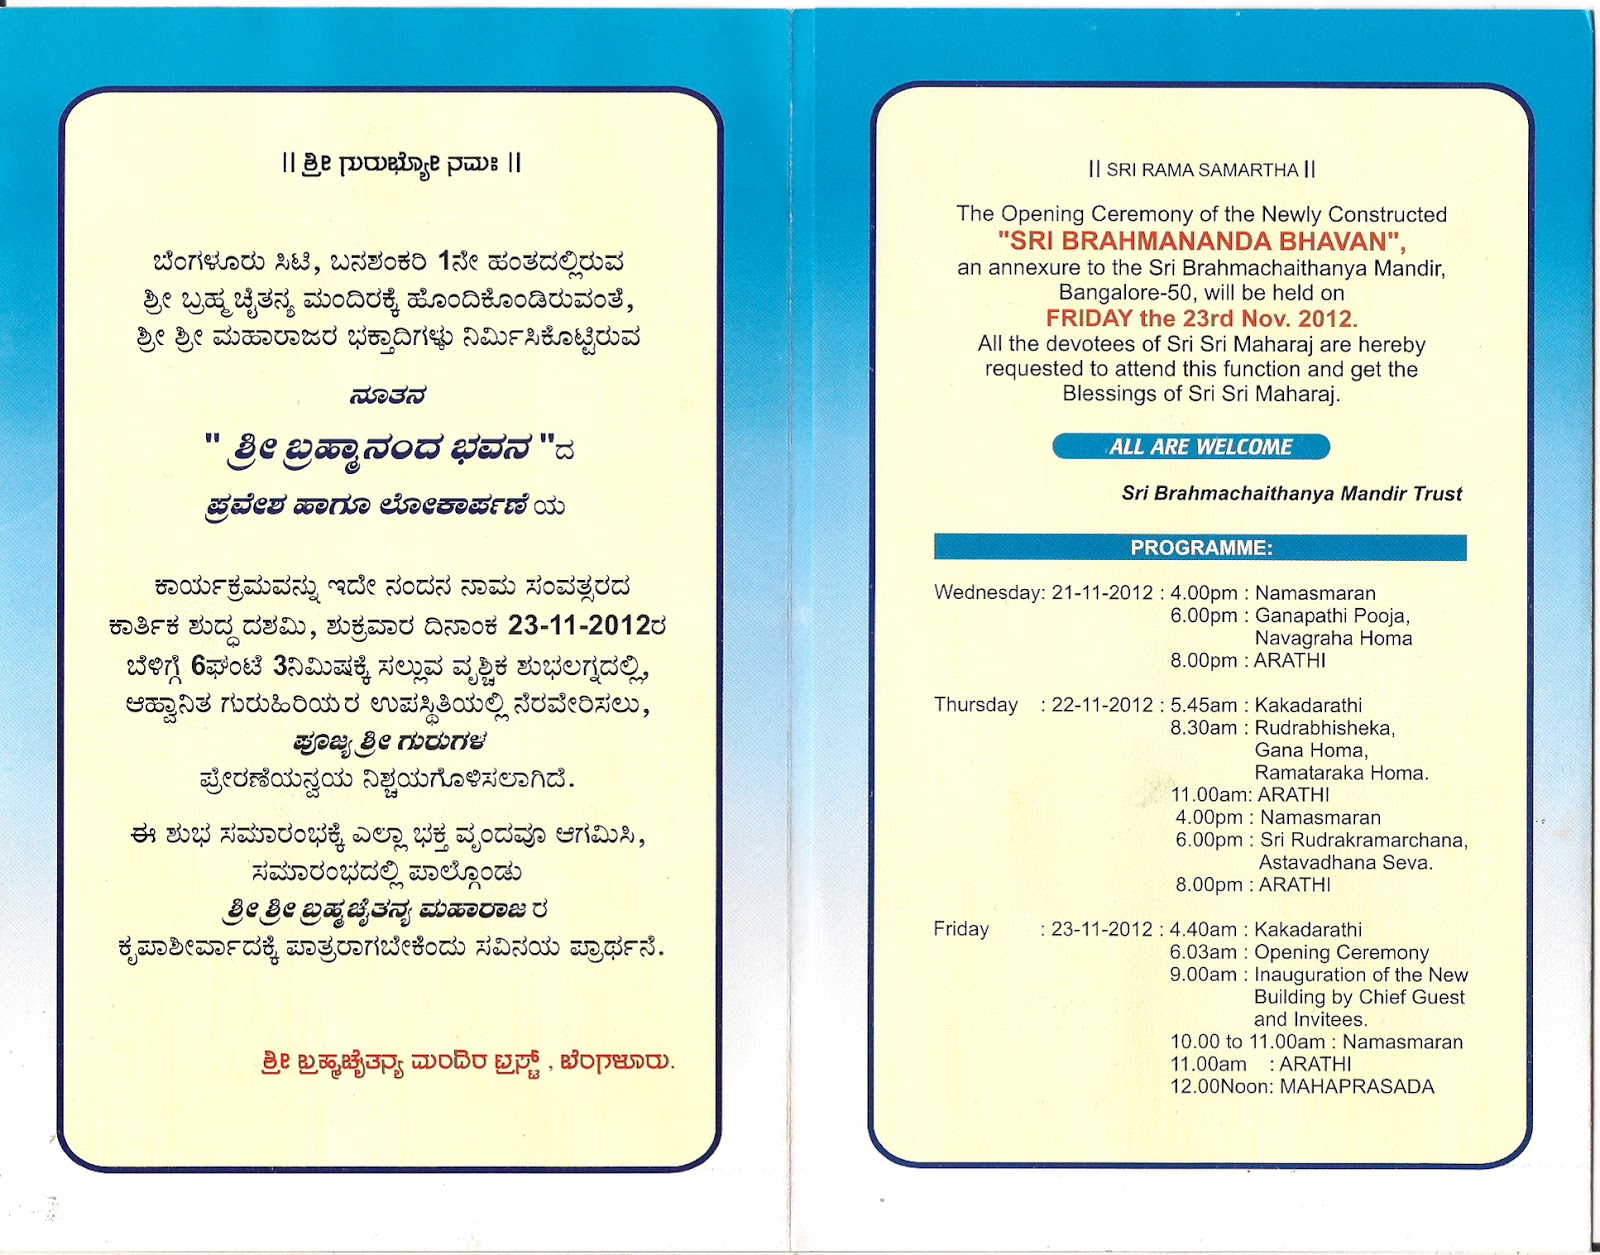 Sri Brahmachaithanya Maharaj An invitation to the Opening ceremony